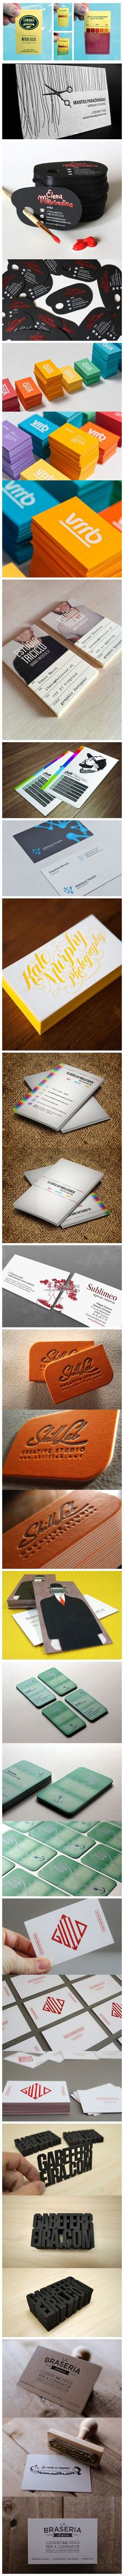 Business cards don't have to be dull...